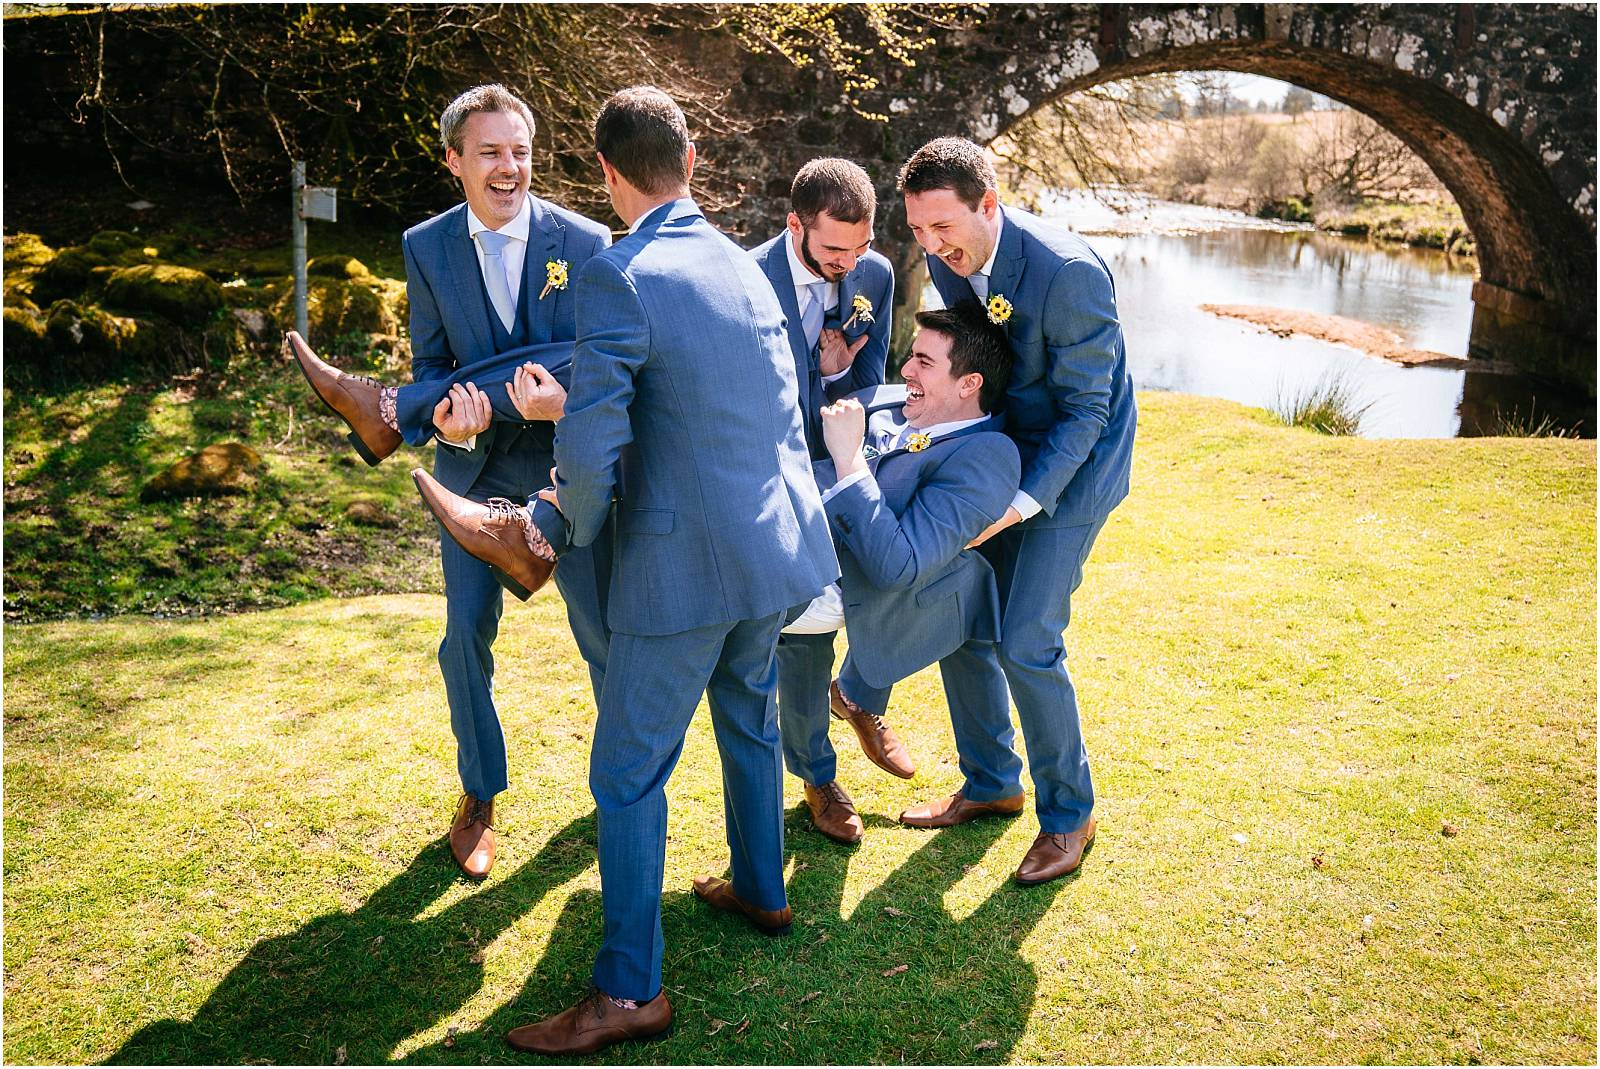 unsuccessfully lifting the groom